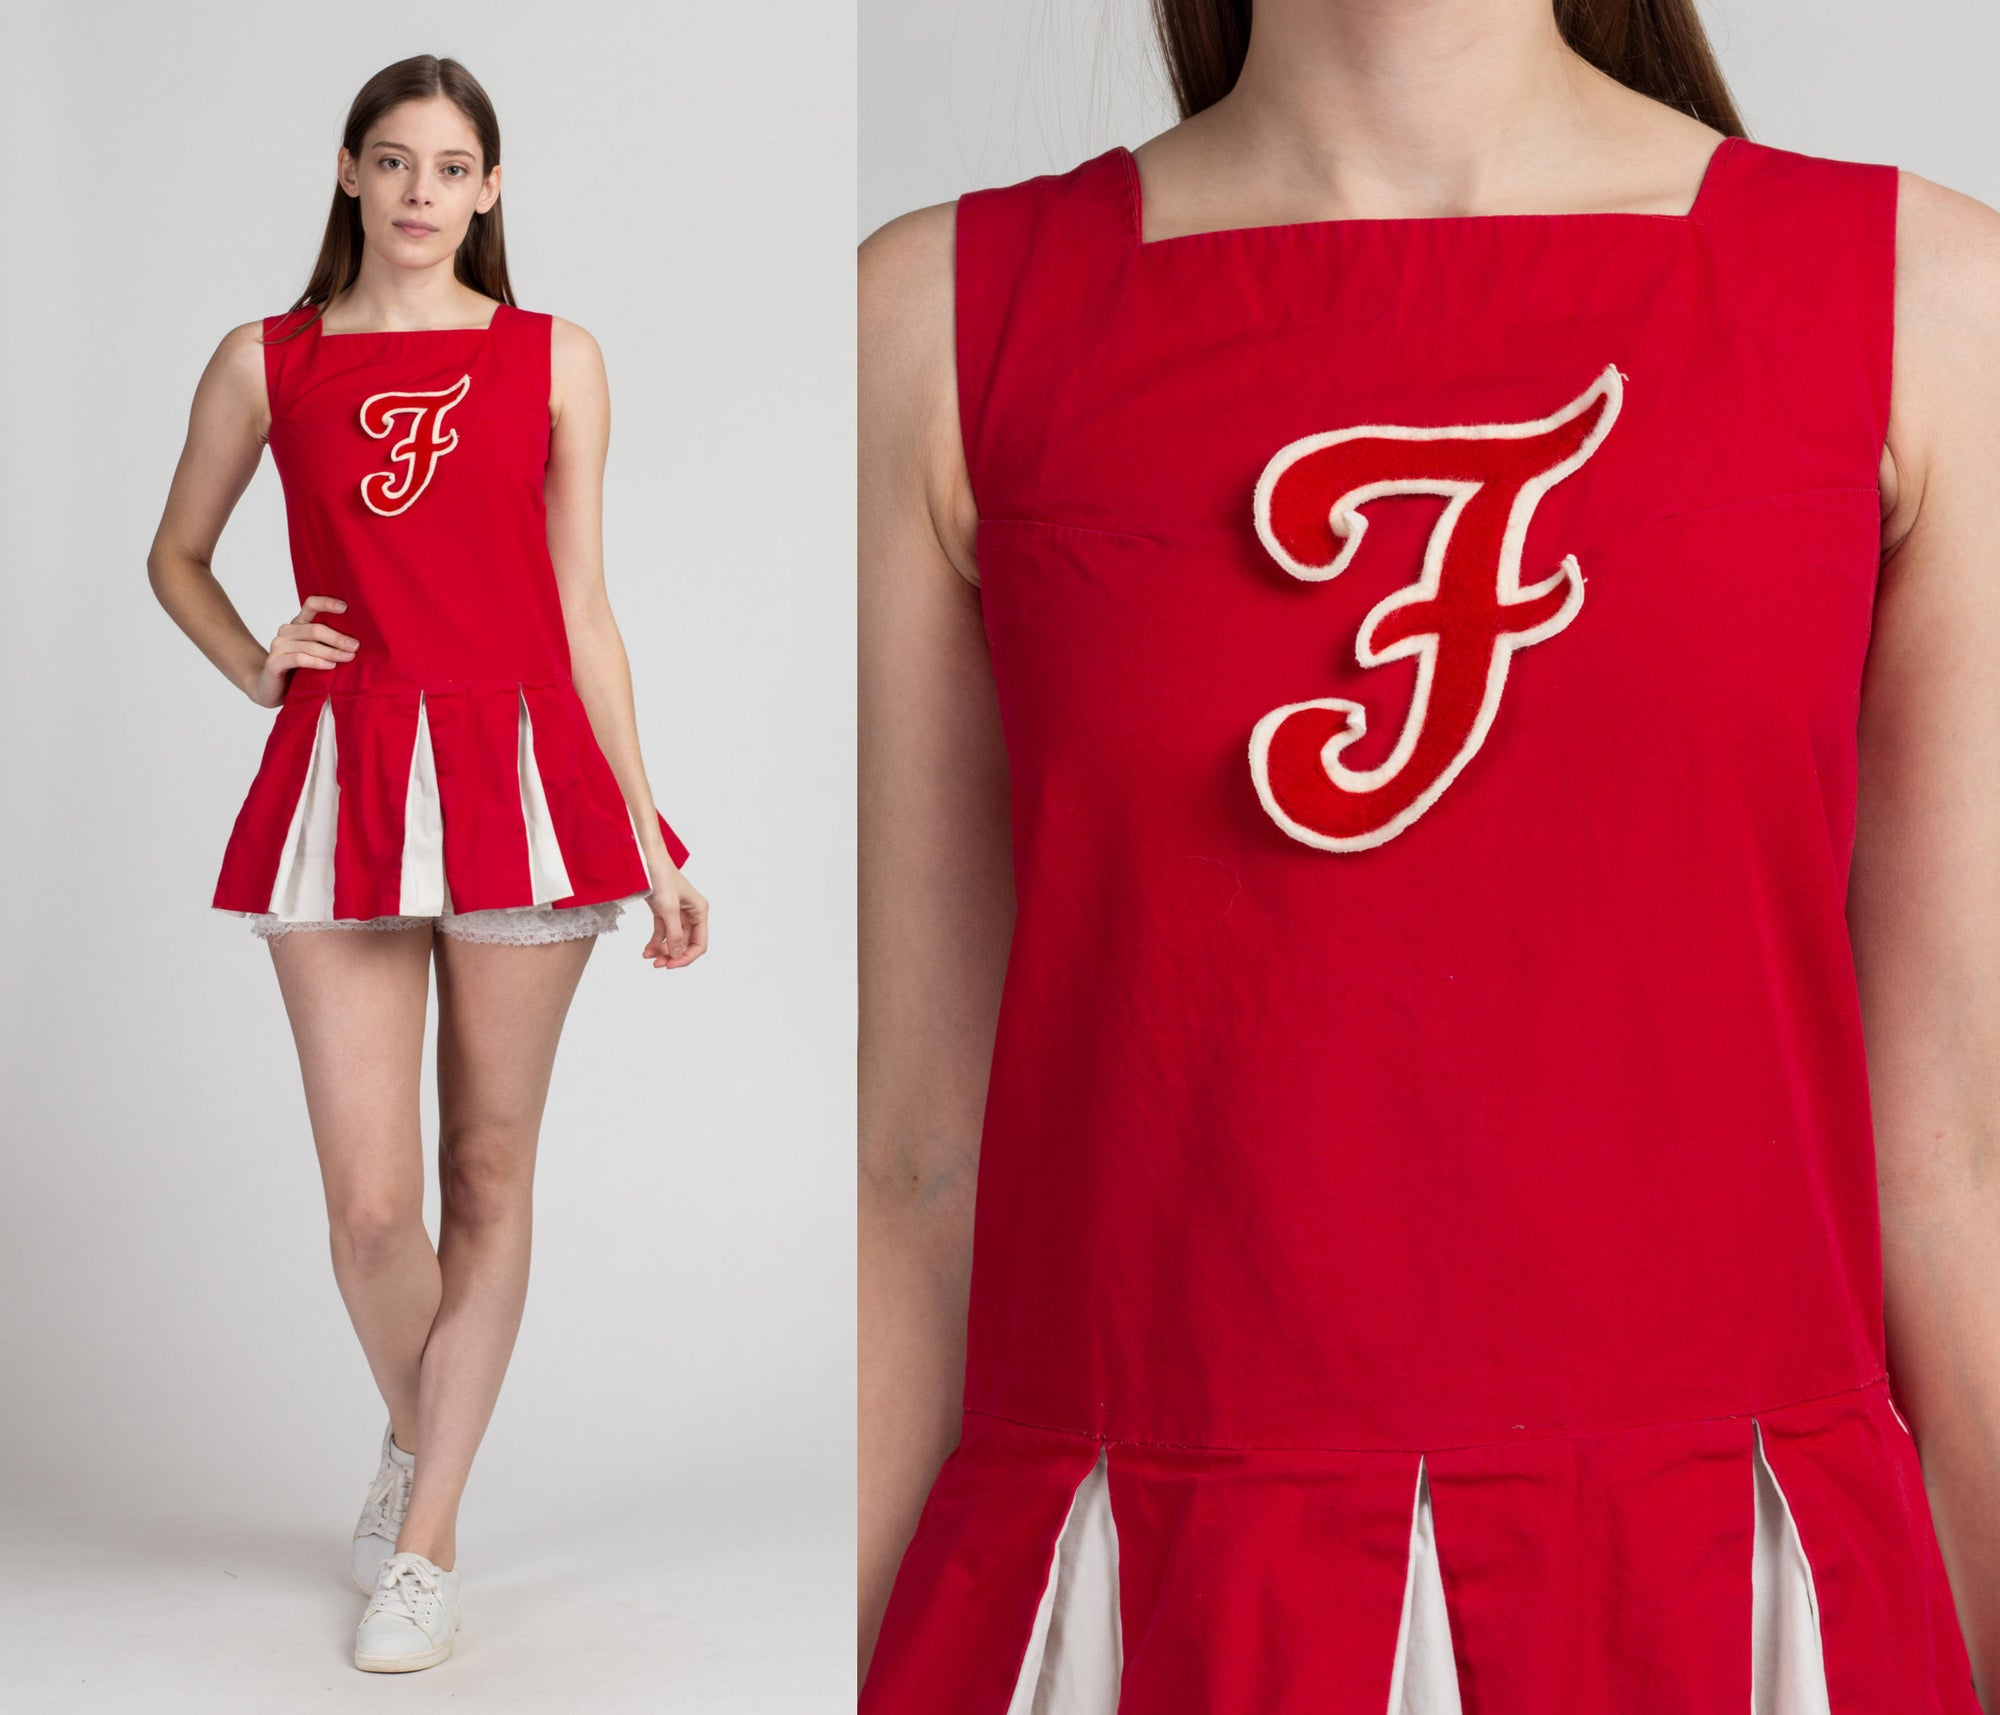 Vintage 60s Cheerleader Mini Dress - Petite Extra Small | 1960s Red White Micro Mini Cheer Outfit